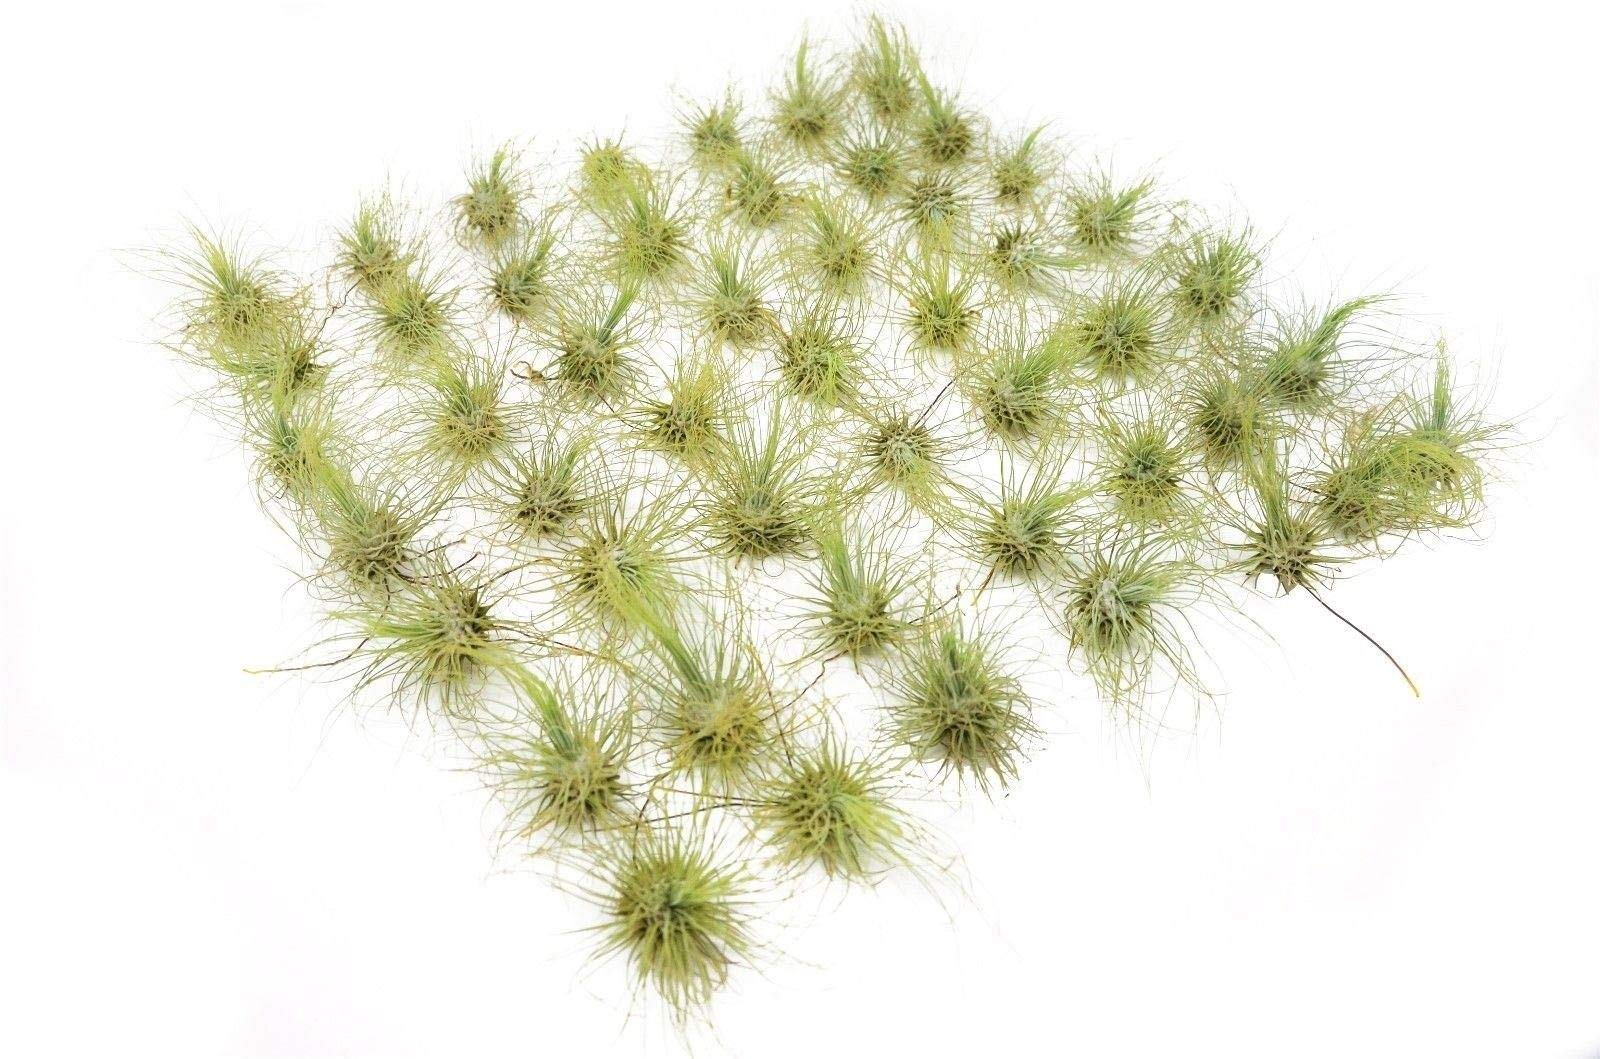 50-Pack Fuchsii Air Plants / 2-3 Inches Large/Wholesale/Bulk by AchmadAnam (Image #1)